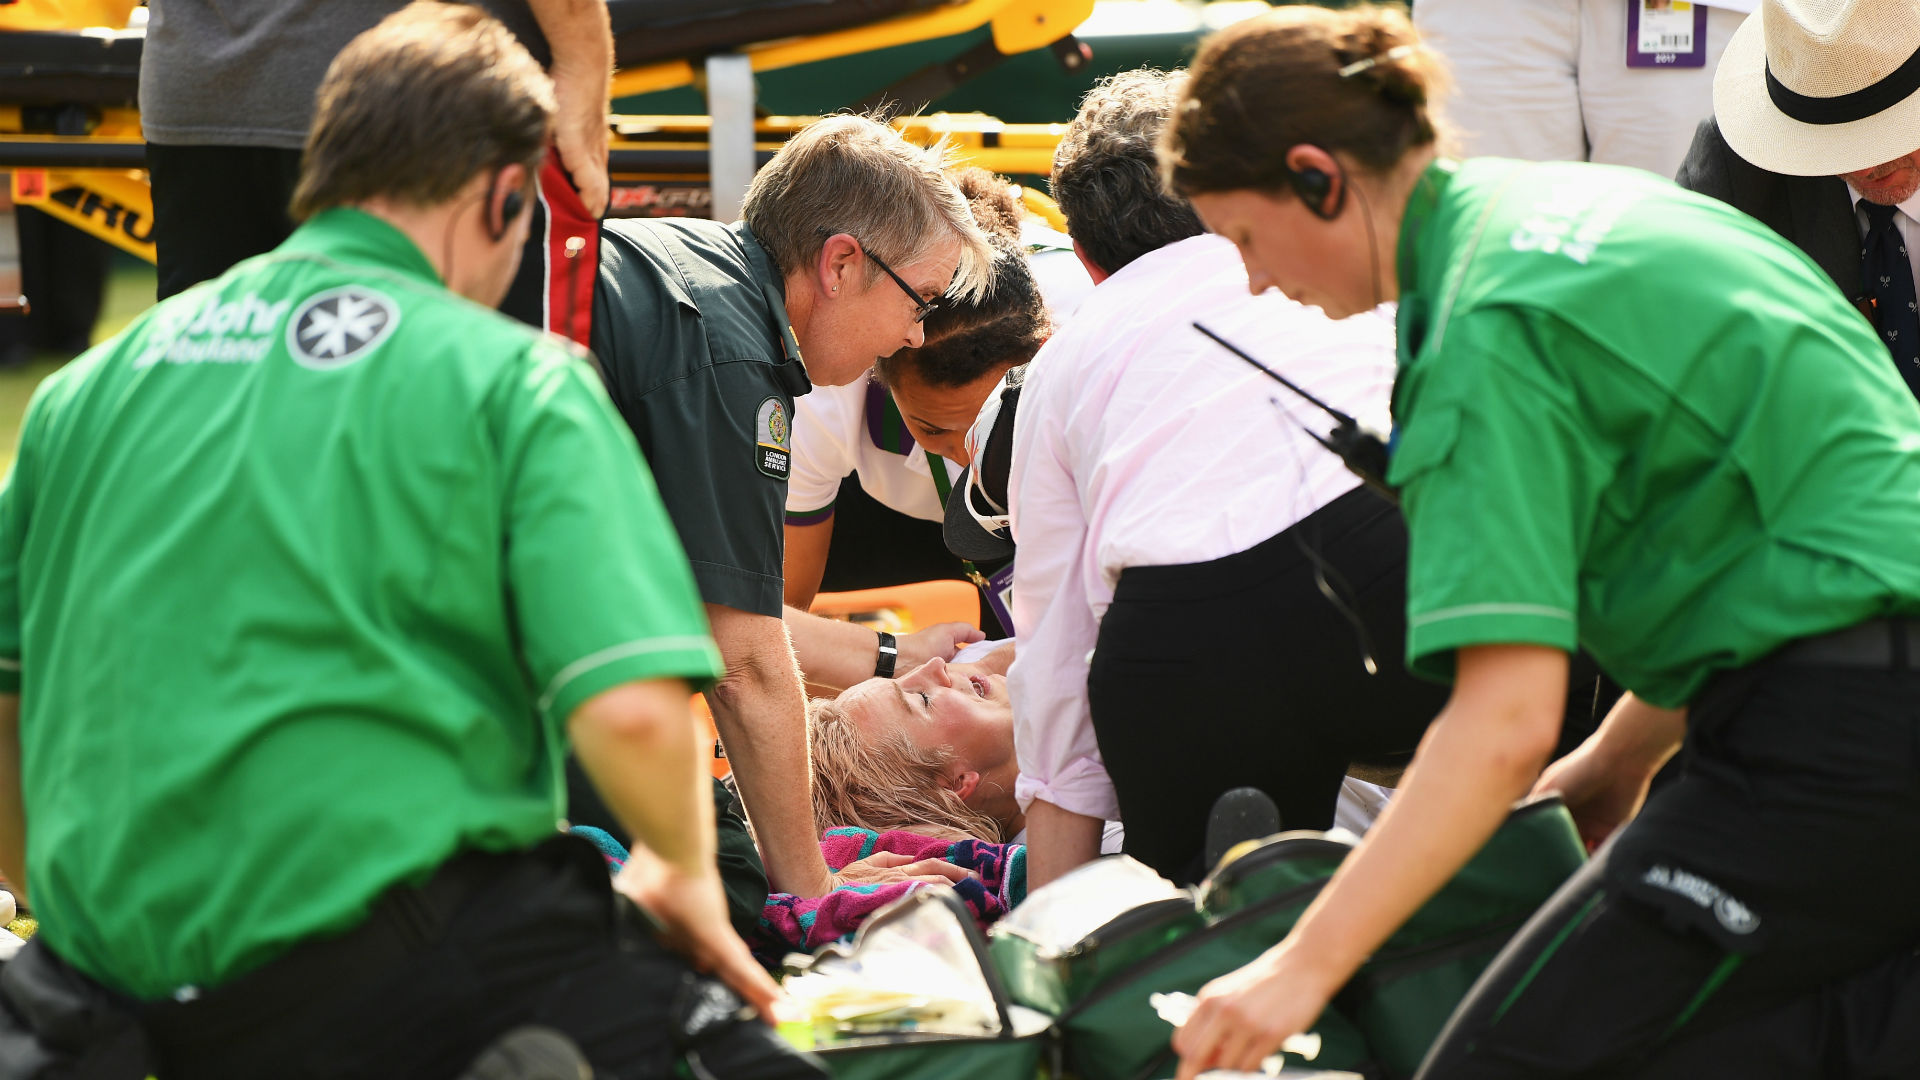 Bethanie Mattek-Sands Suffers Serious Knee Injury at Wimbledon 2017